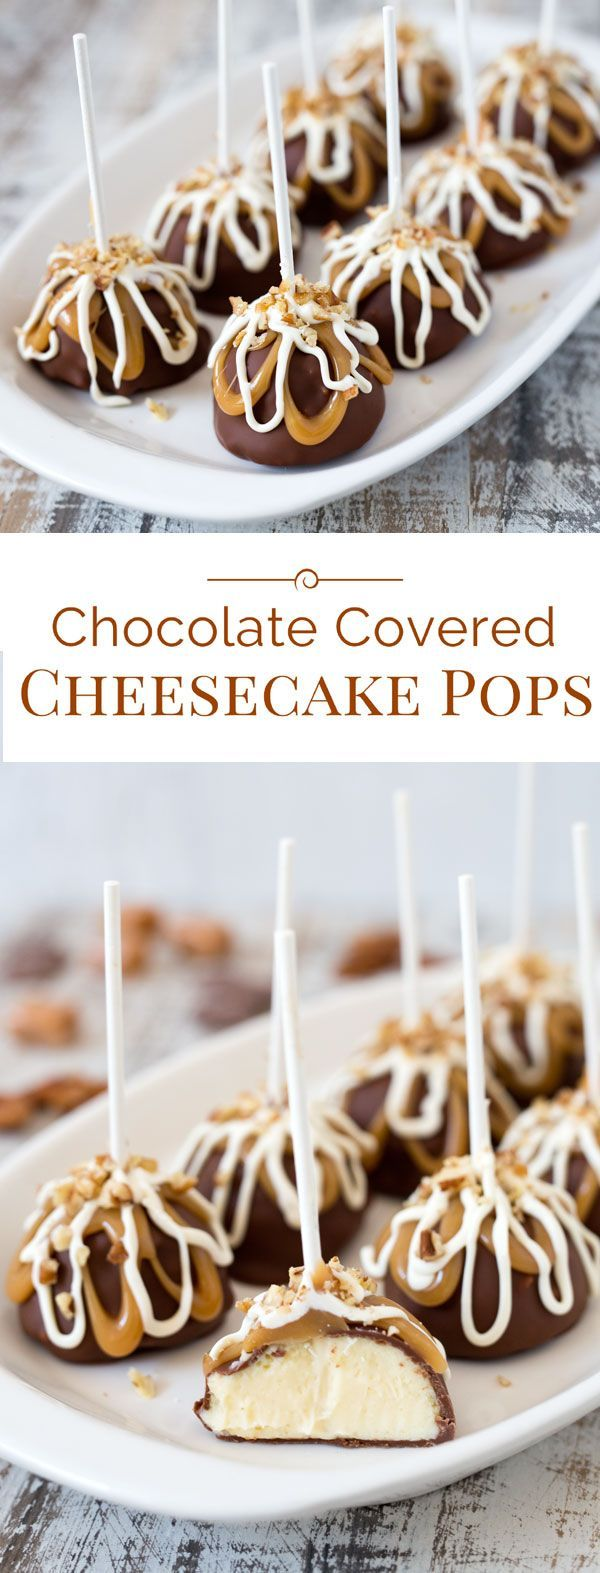 Chocolate Covered Cheesecake Pops #chocolatepops